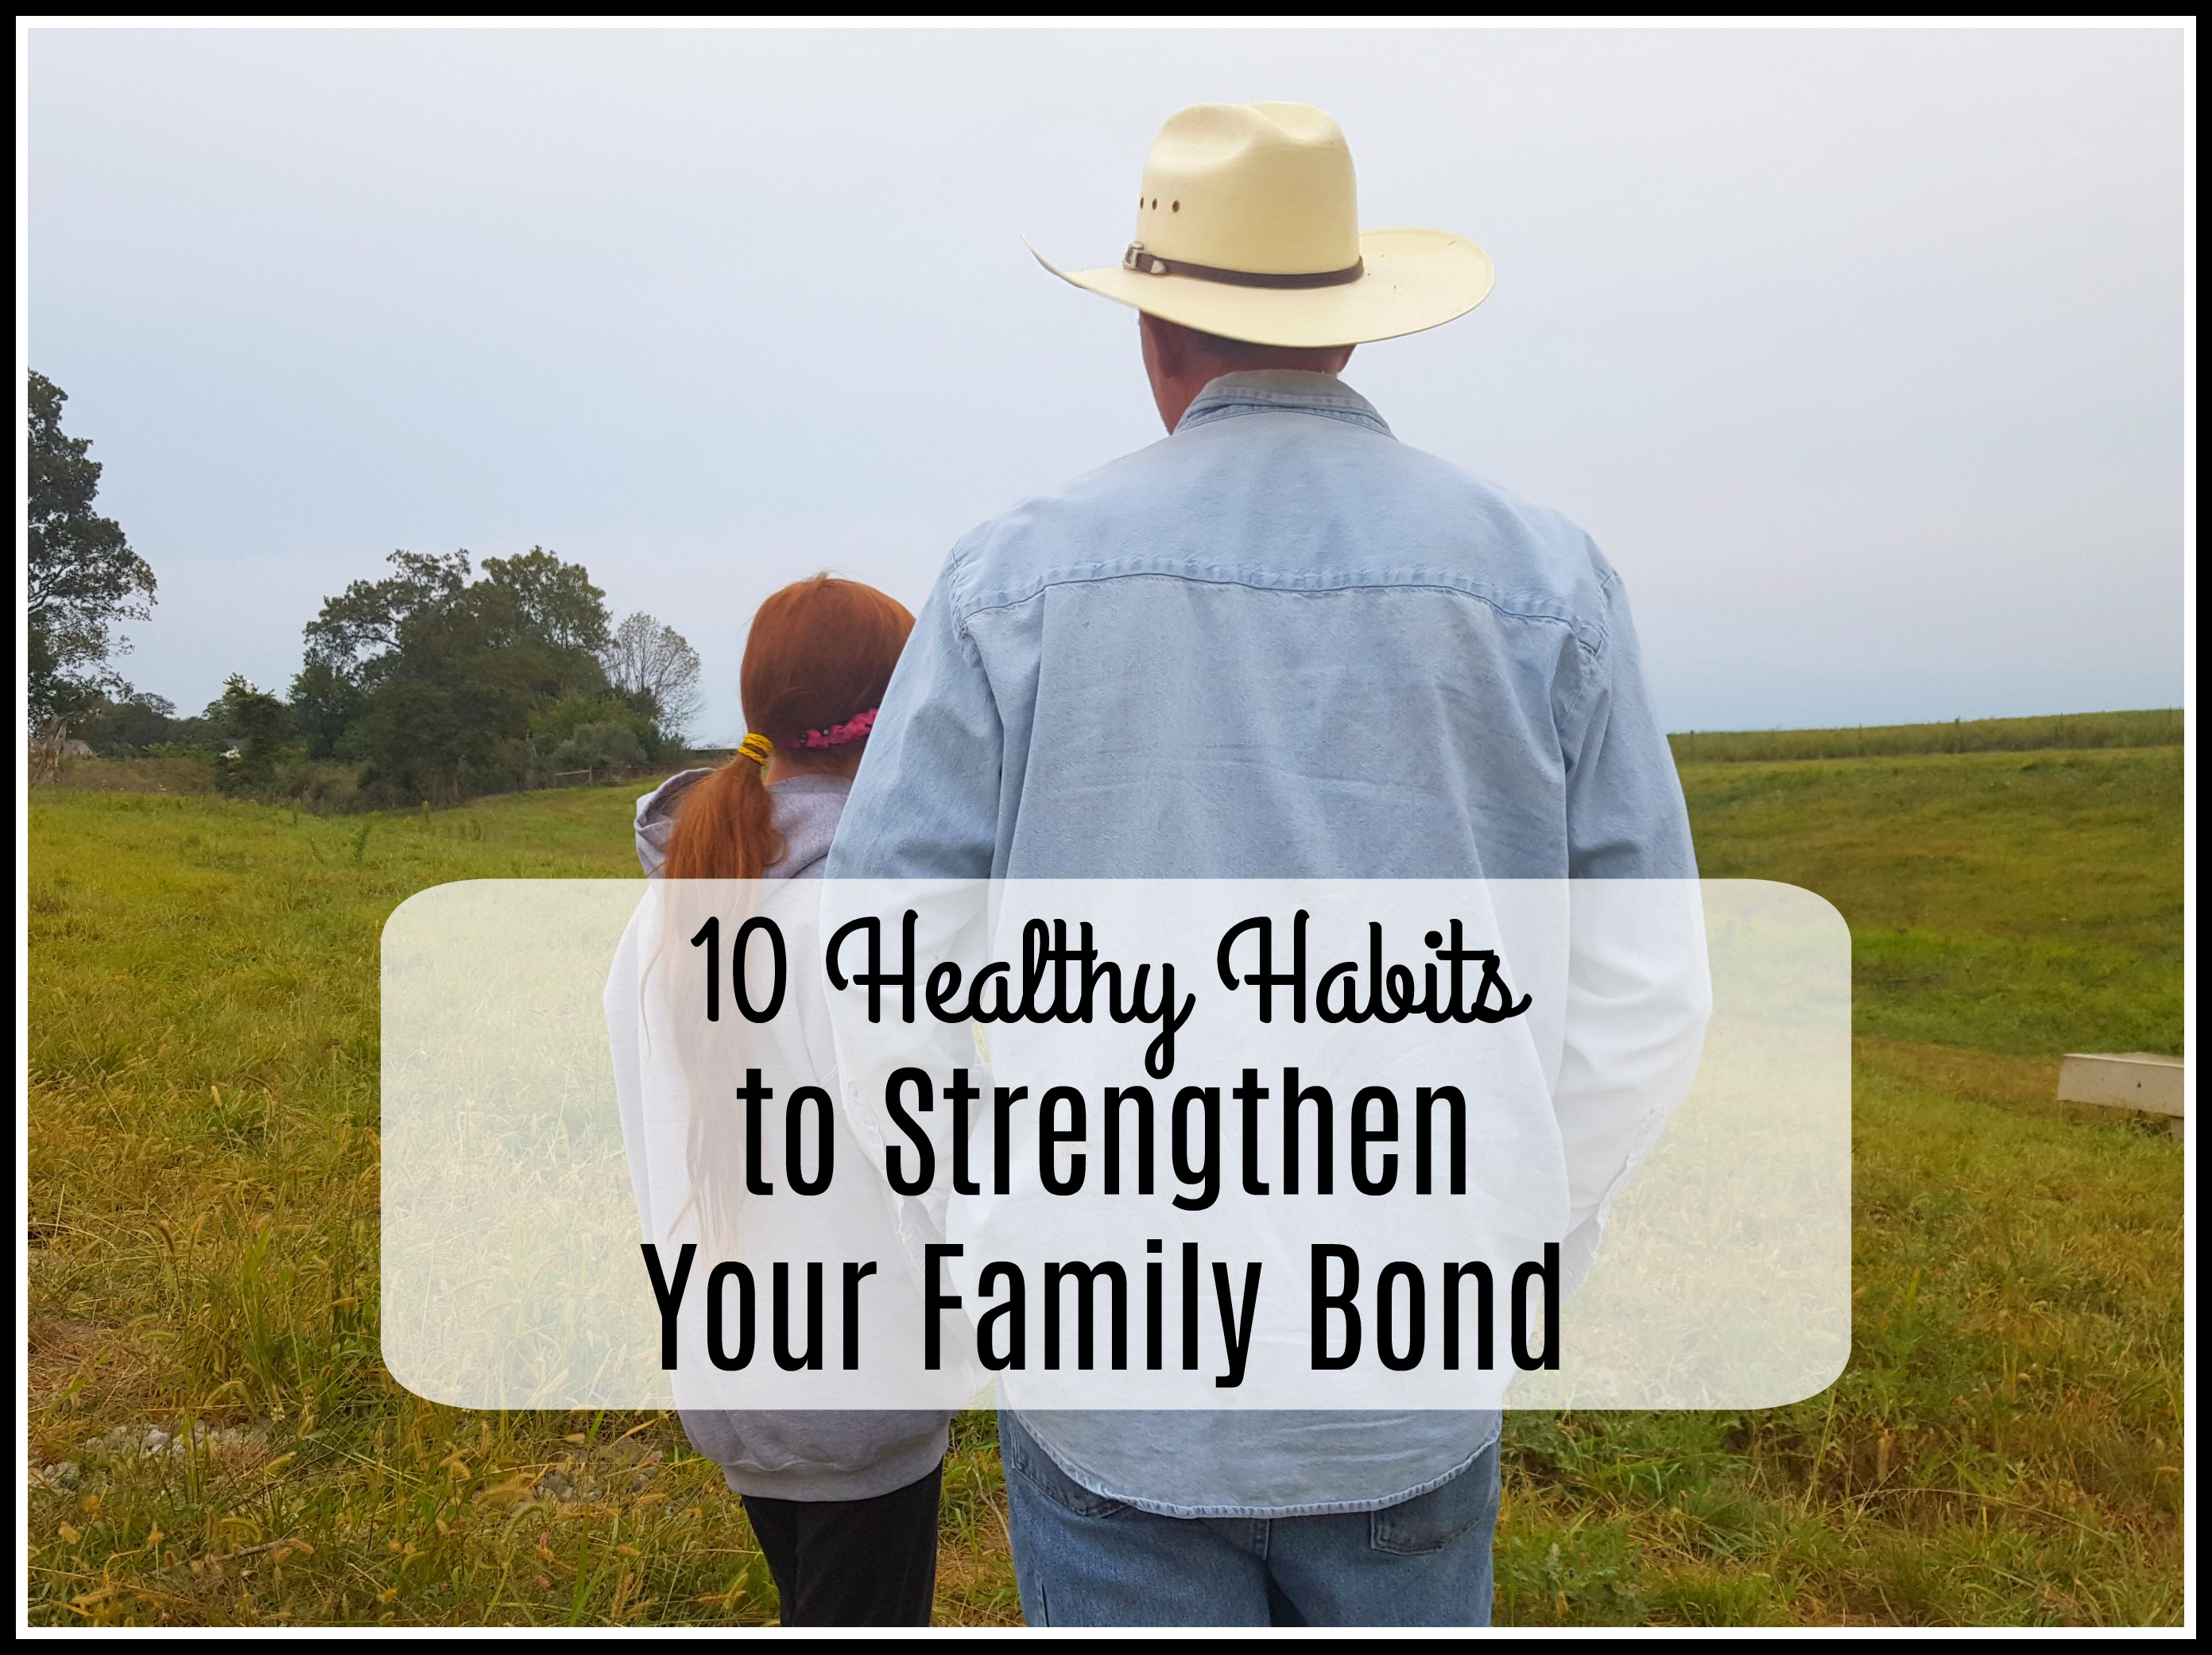 10 Healthy Habits to Strengthen Your Family Bond